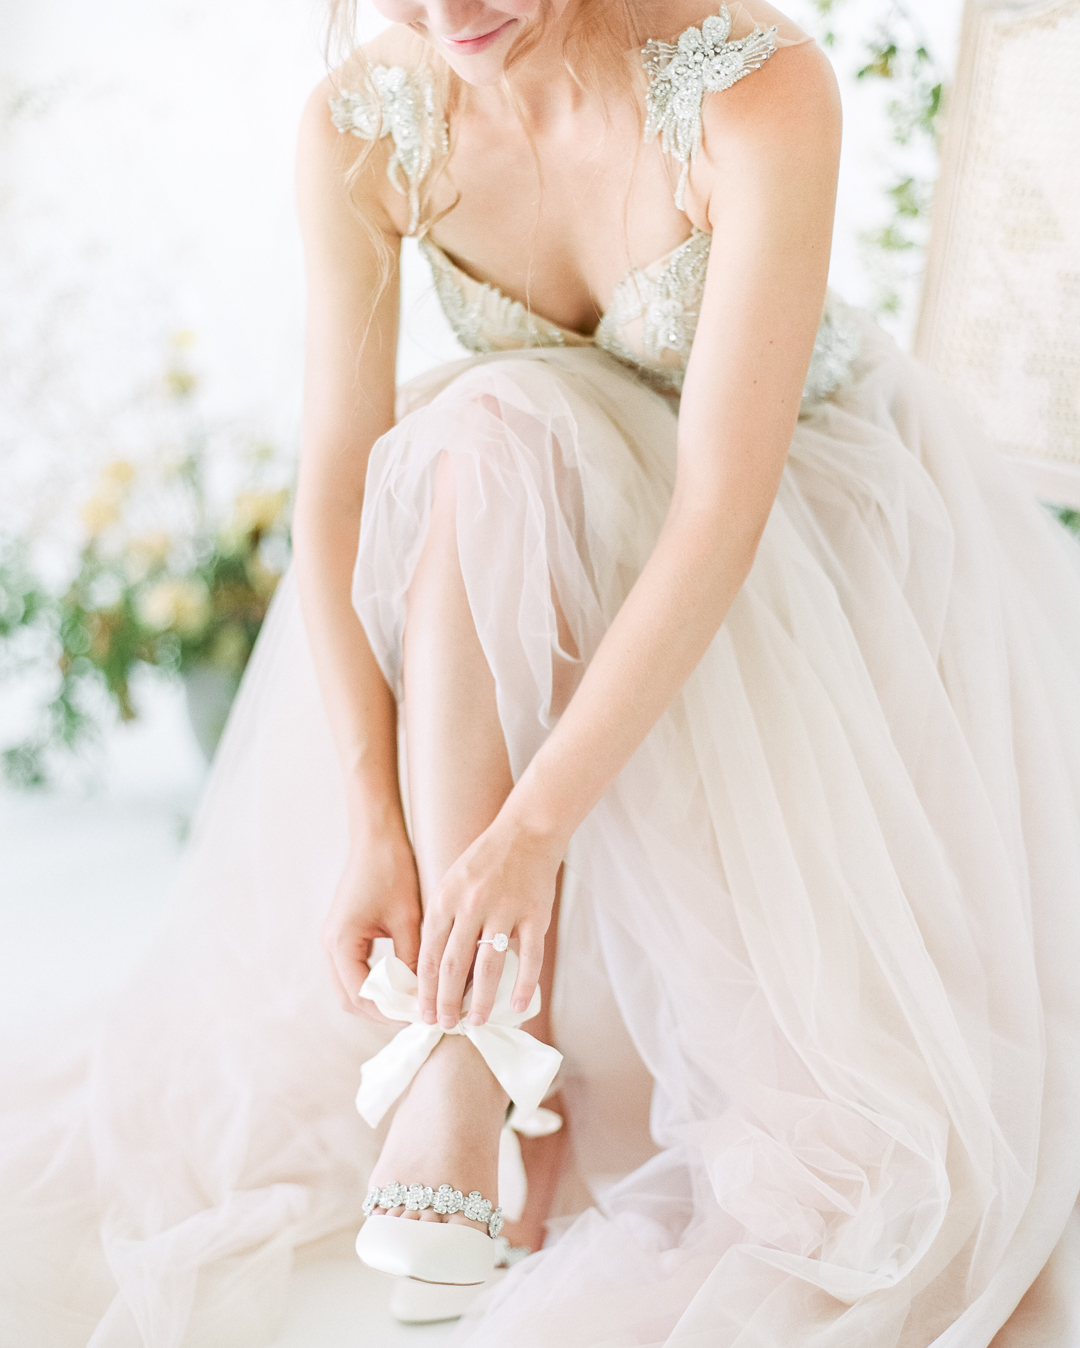 Wedding Shoes With Bow